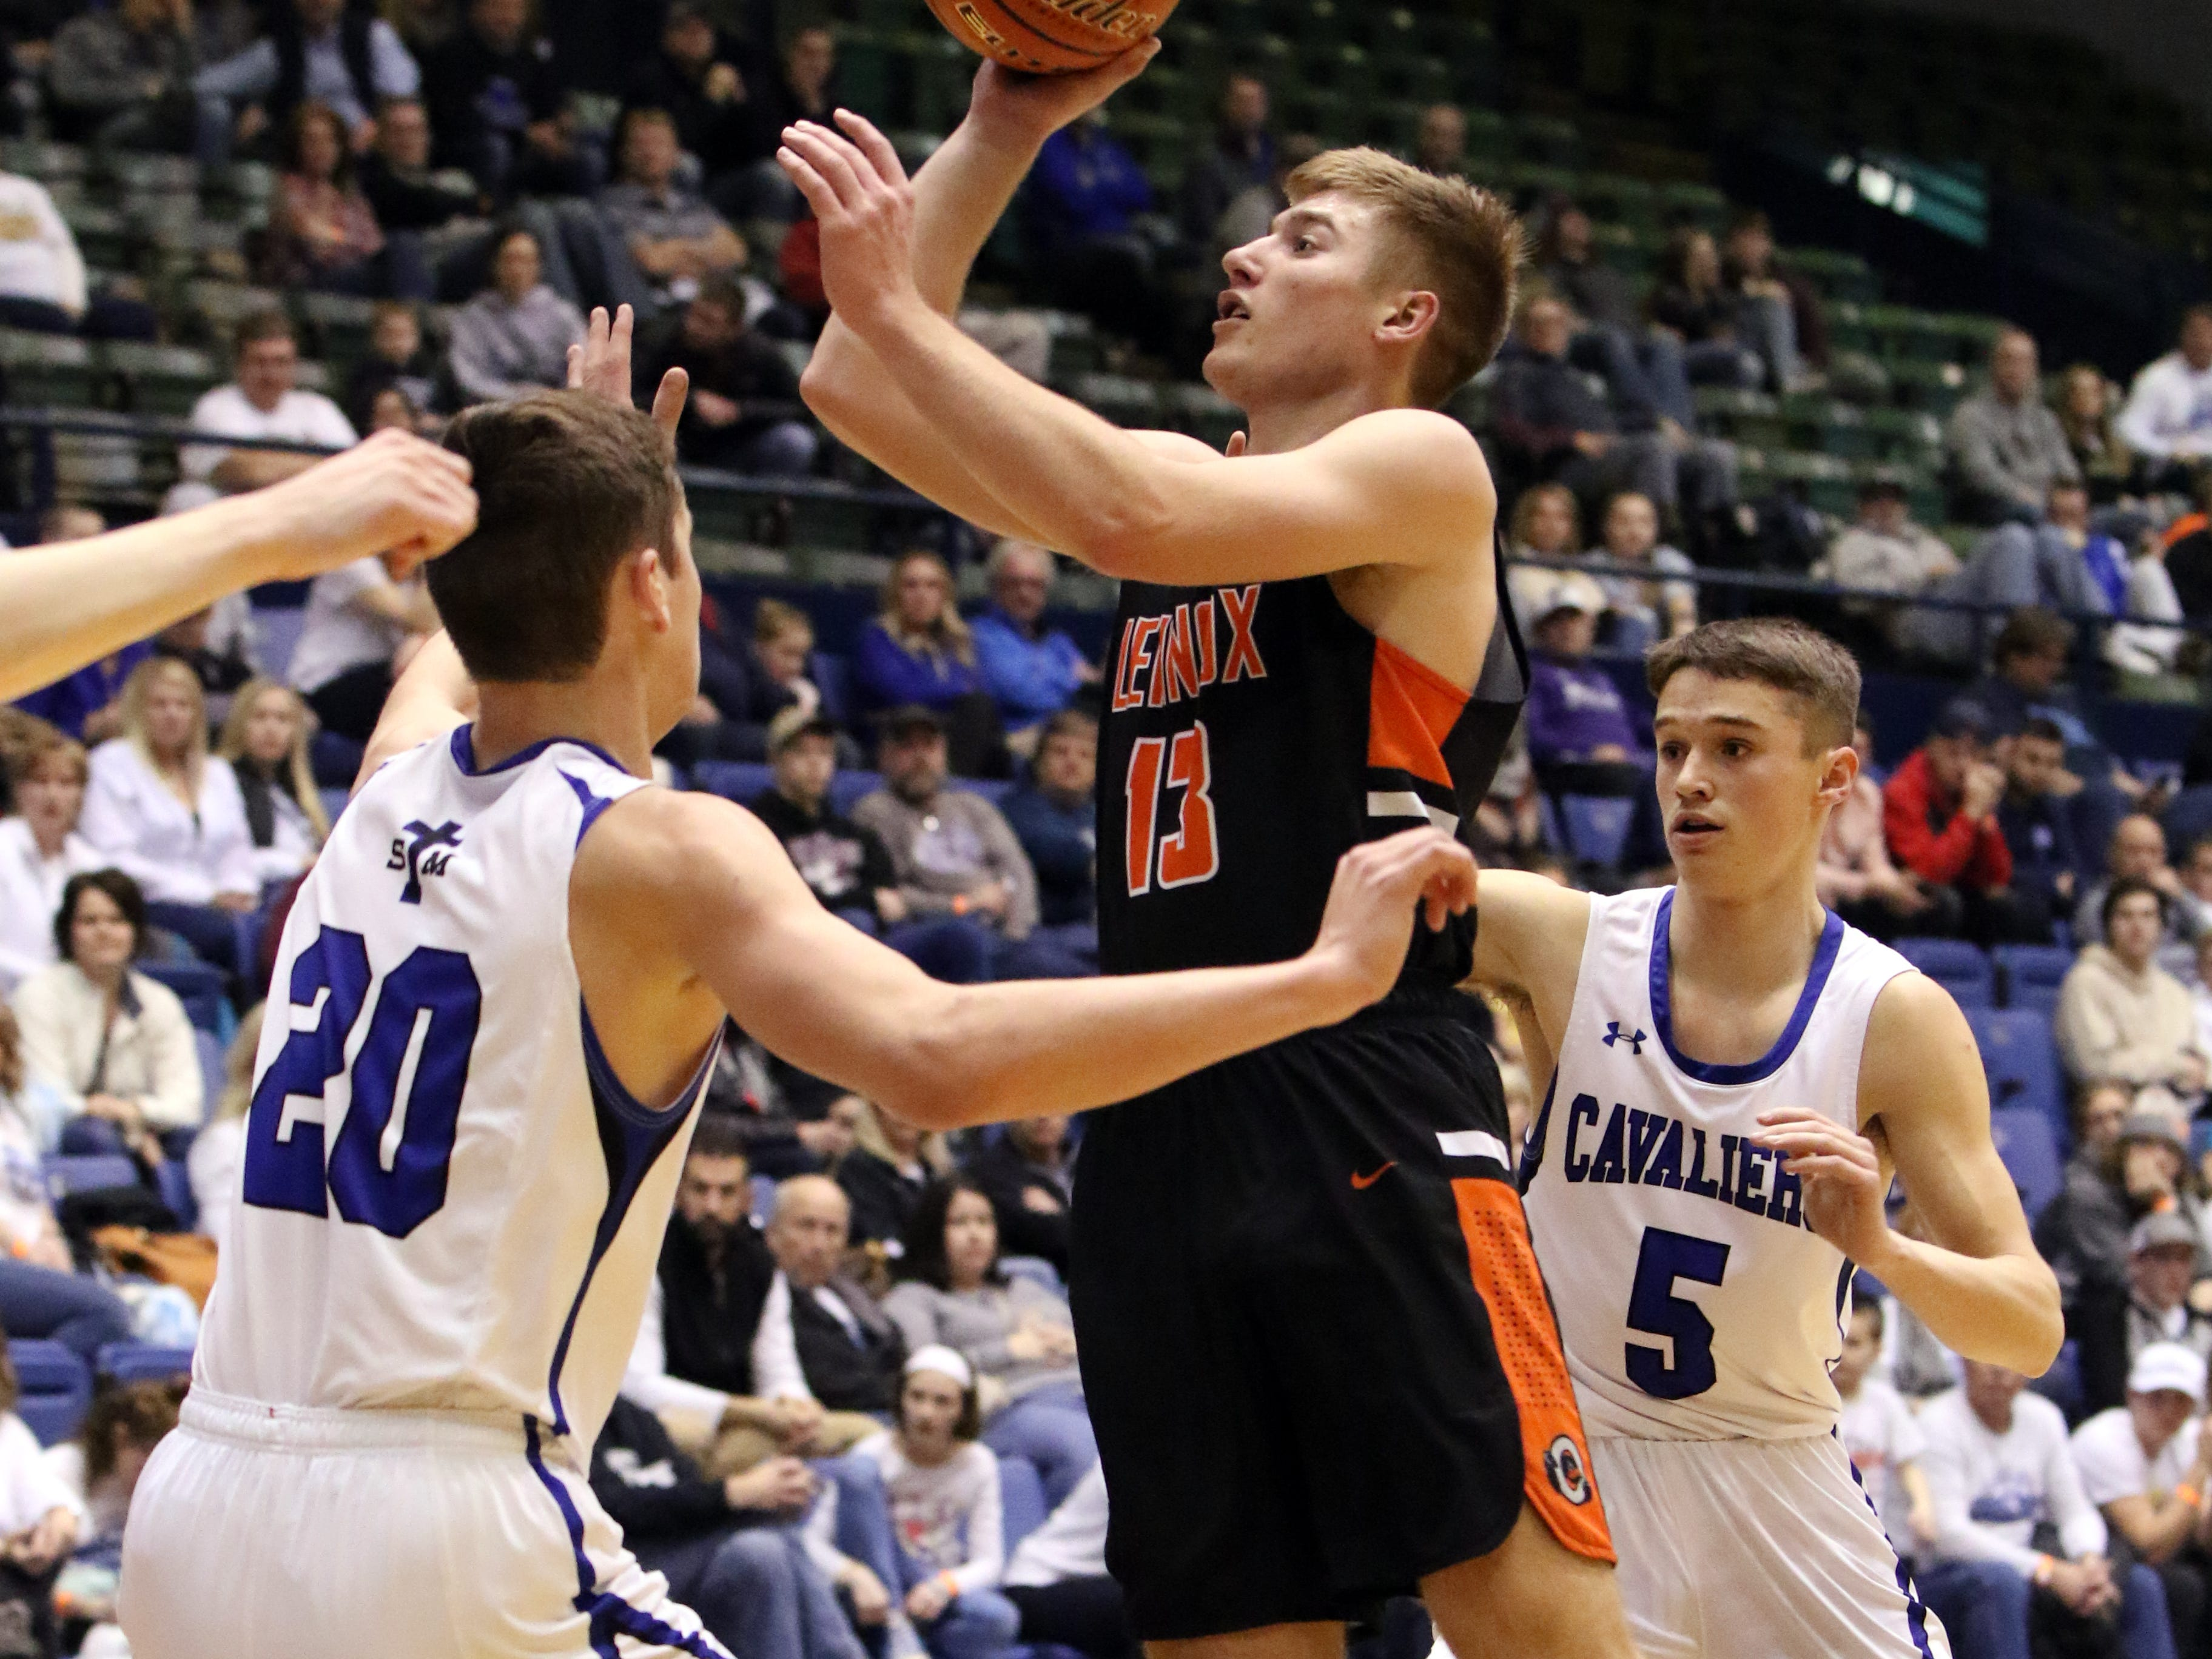 Quincy Ihnen of Lennox shoots the ball between Connor Hollenbeck (20) and Michael Gylten of St Thomas More during Thursday's game at the Arena.